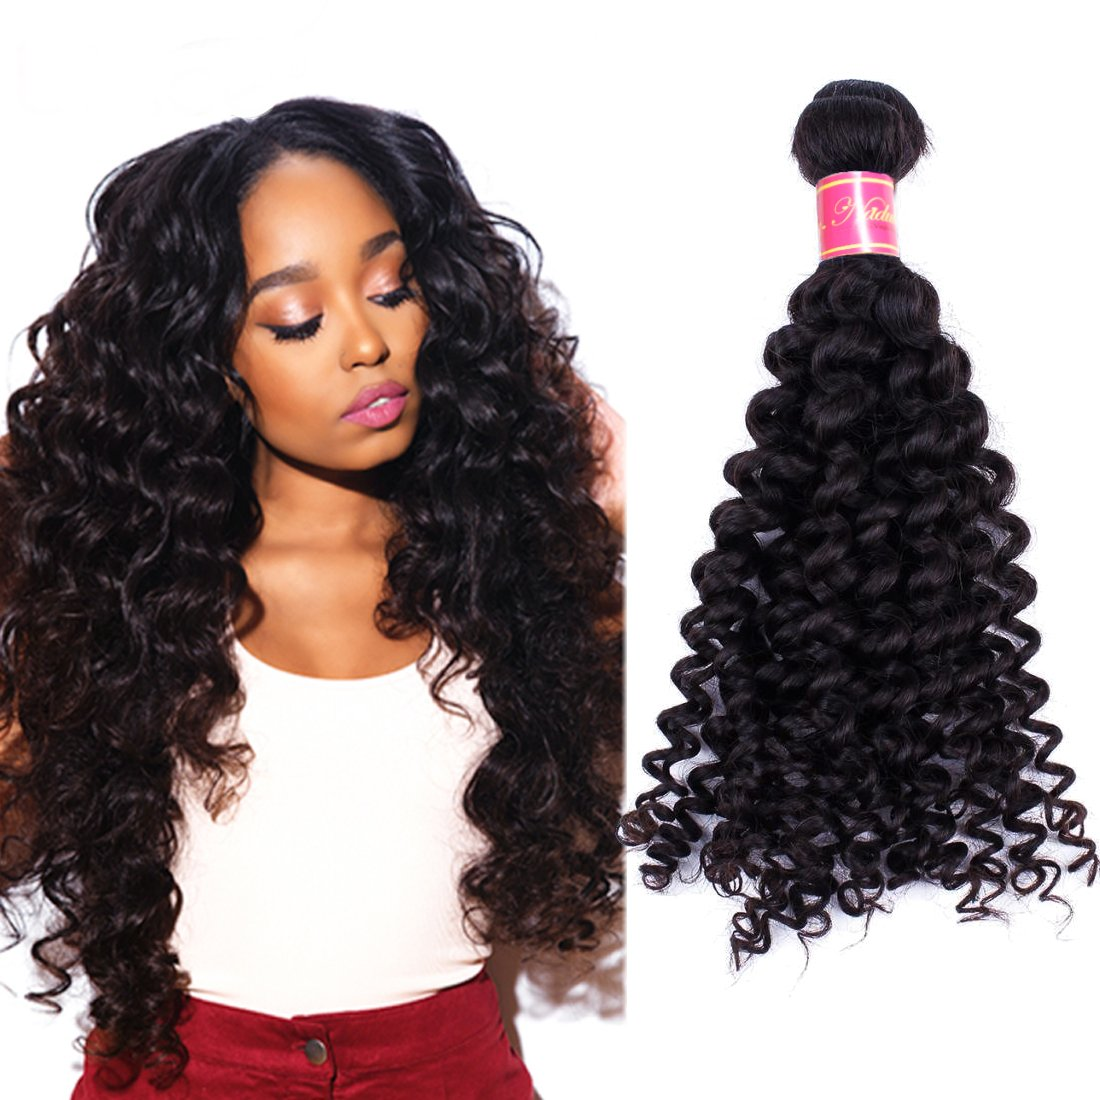 Nadula 6a Remy Virgin Brazilian Deep Wave Human Hair Extensions Pack of 3 Unprocessed Deep Wave Weave Natural Color Mixed Length 16inch 18inch 20inch by Nadula (Image #4)